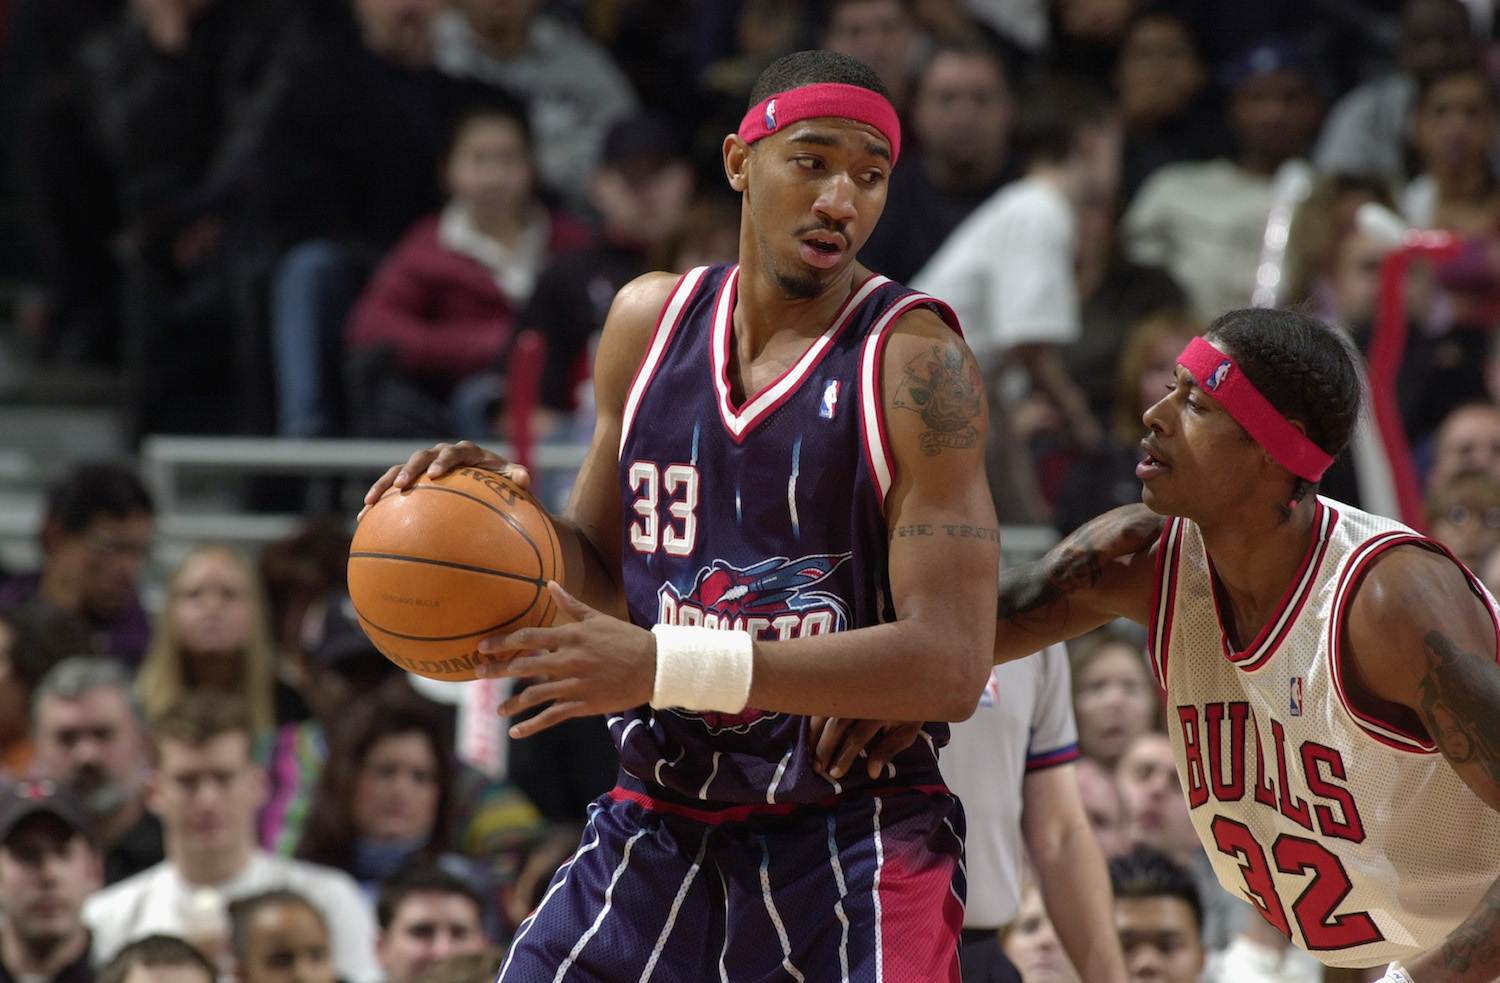 Eddie Griffin's Demons Destroyed His Promising NBA Career and Tragically Ended His Life When His Car Struck a Train and Exploded Into a Fireball